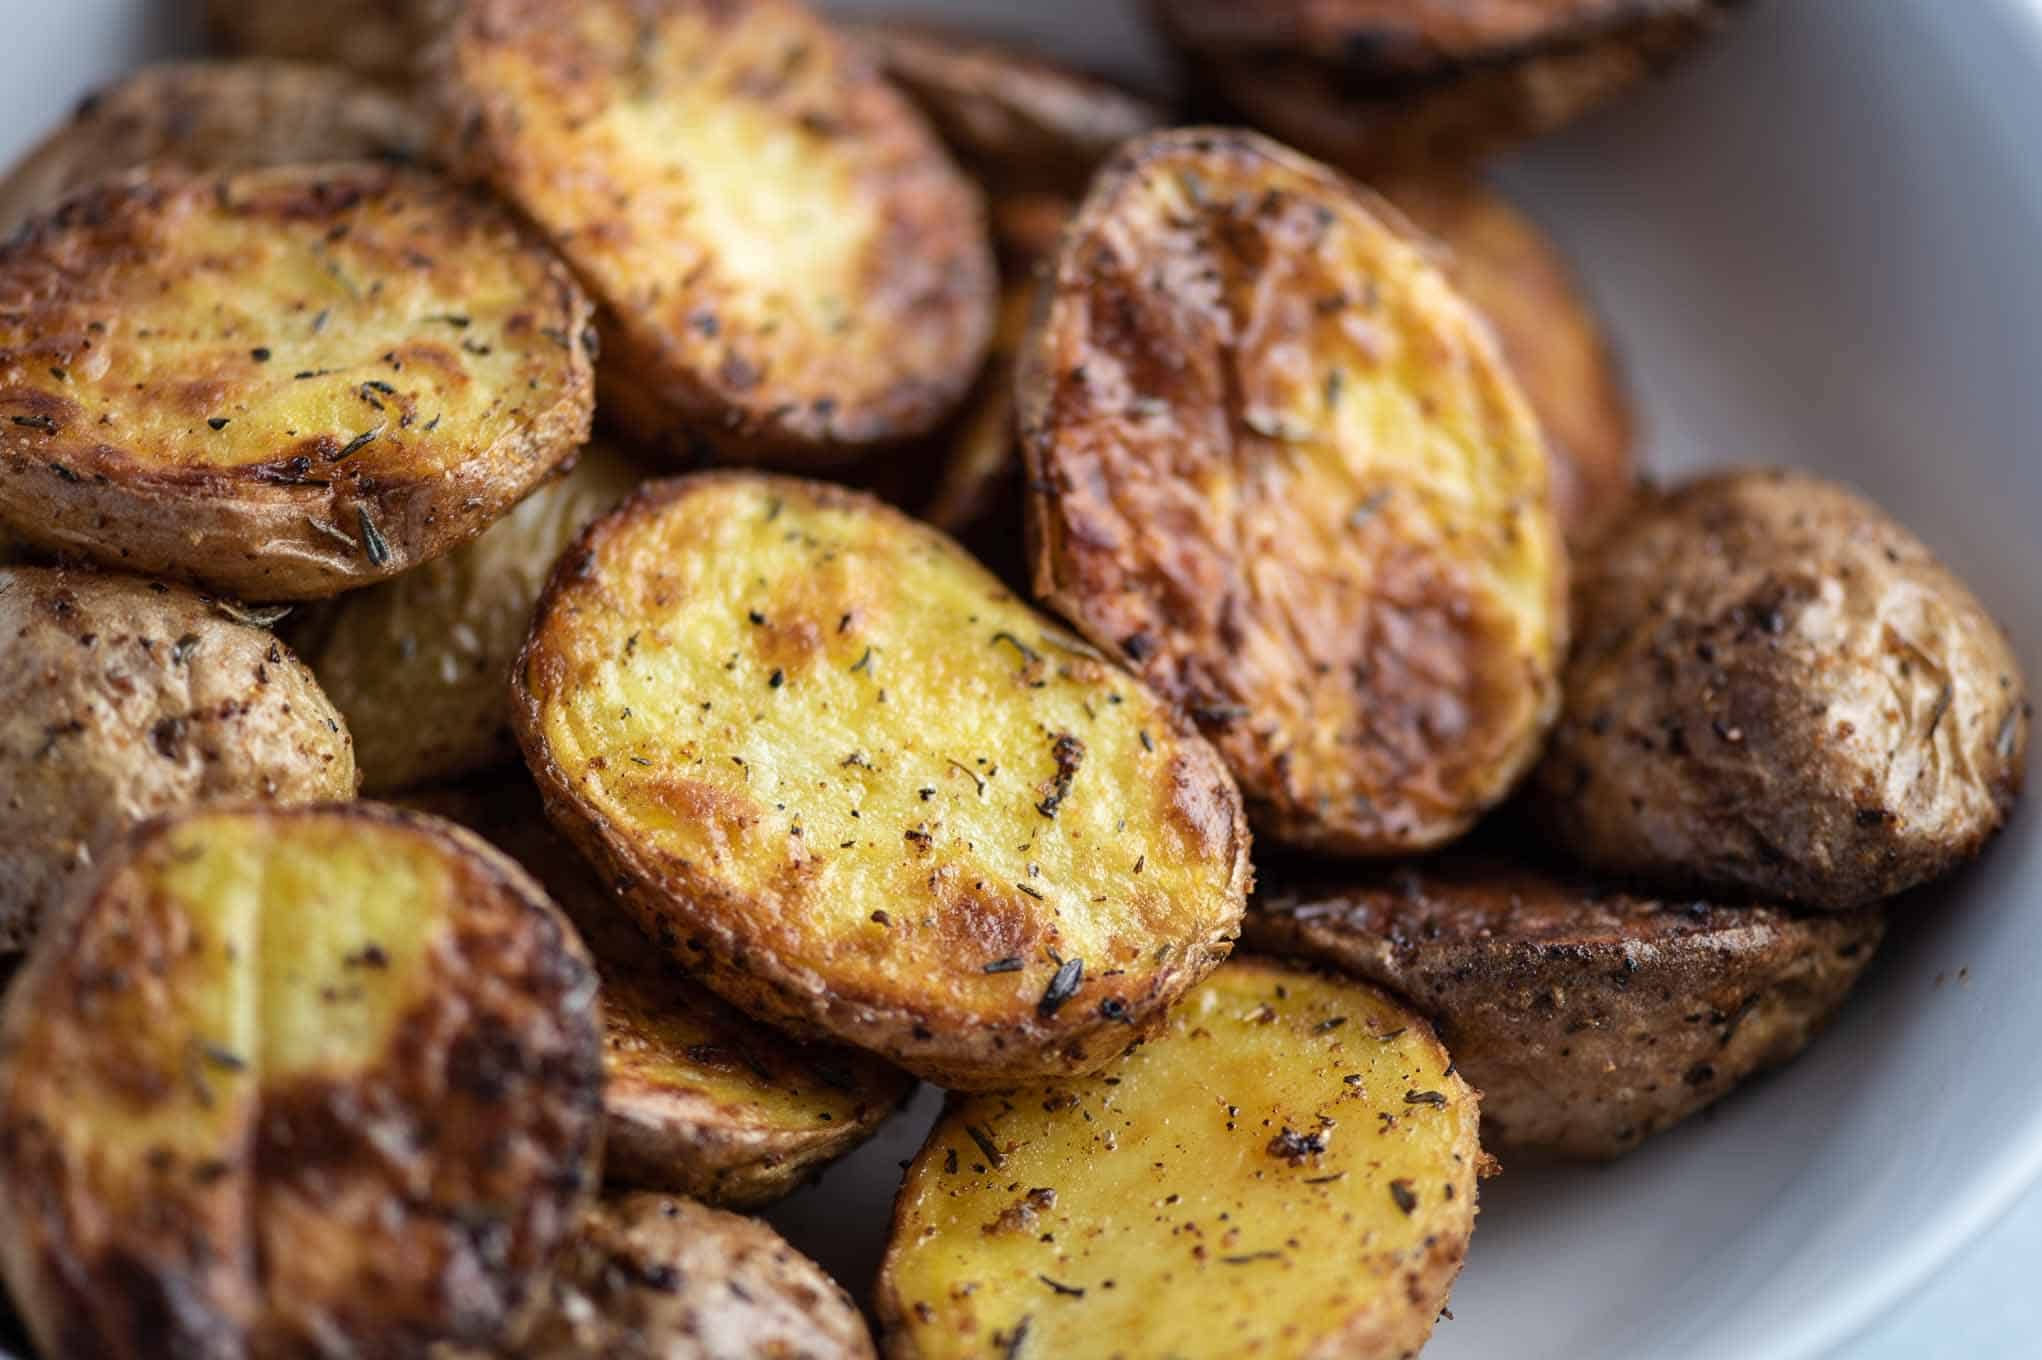 crispy baby potatoes image up close in a white bowl